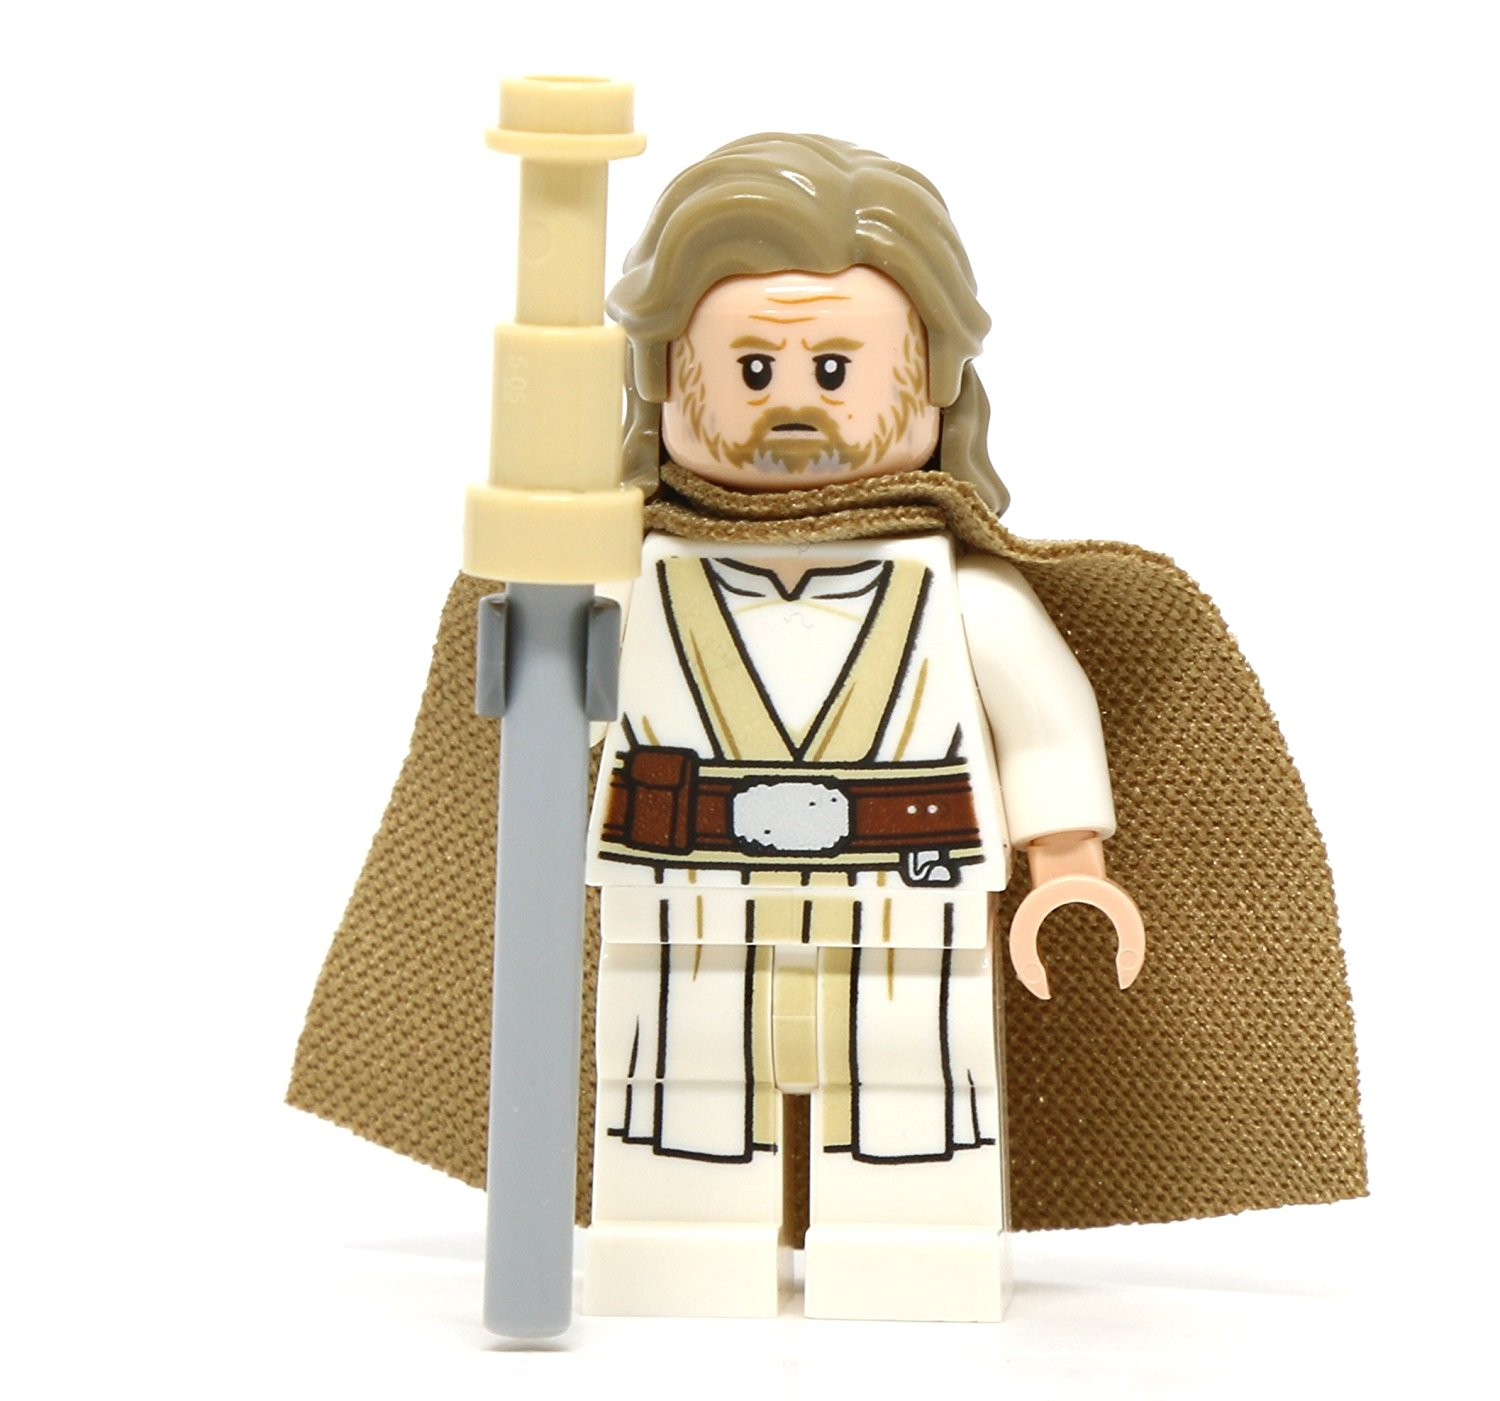 TLJ Old Luke Skywalker Lego Mini Figure